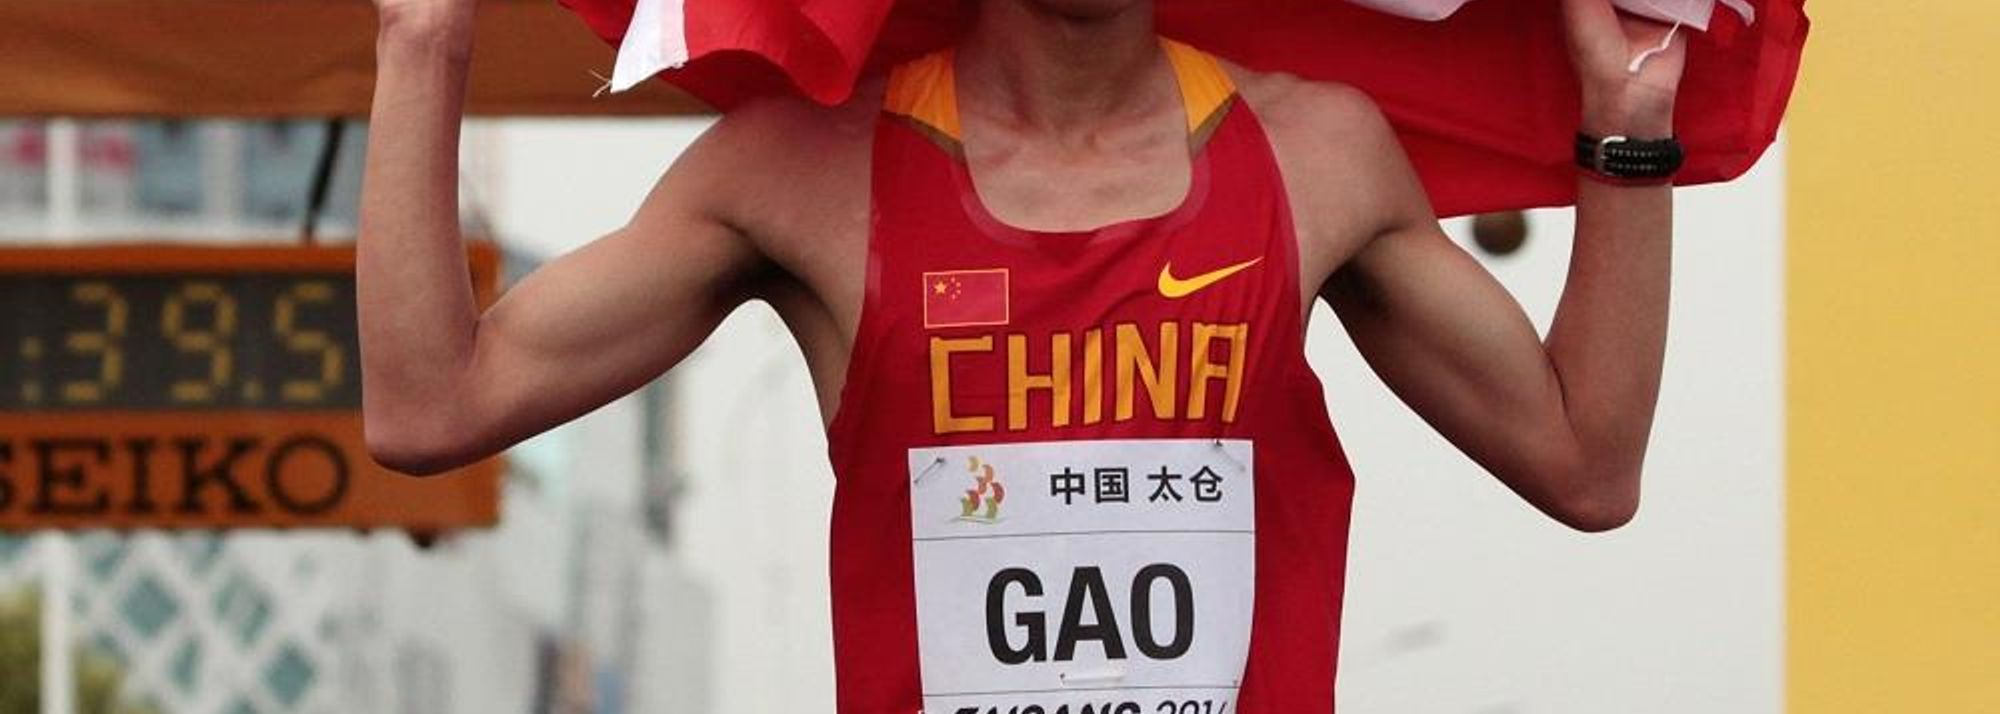 A thrilling last 2km lap, with four men in contention at the bell, saw Gao Wenkui triumph on home soil in the junior men's 10km race at the 2014 IAAF World Race Walking Cup in Taicang, China on Saturday (3).